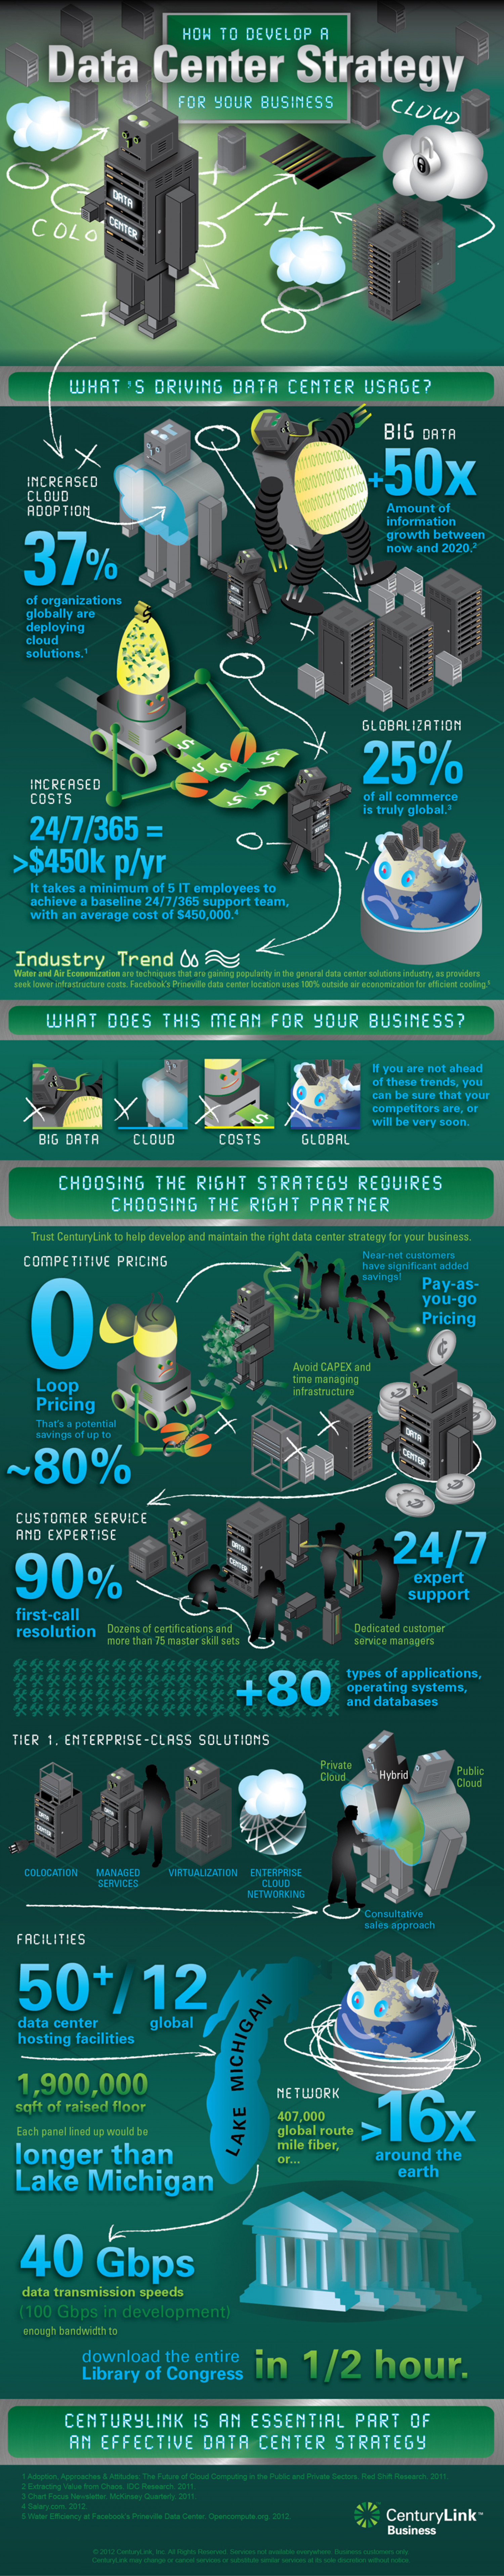 Data Center Strategy Infographic